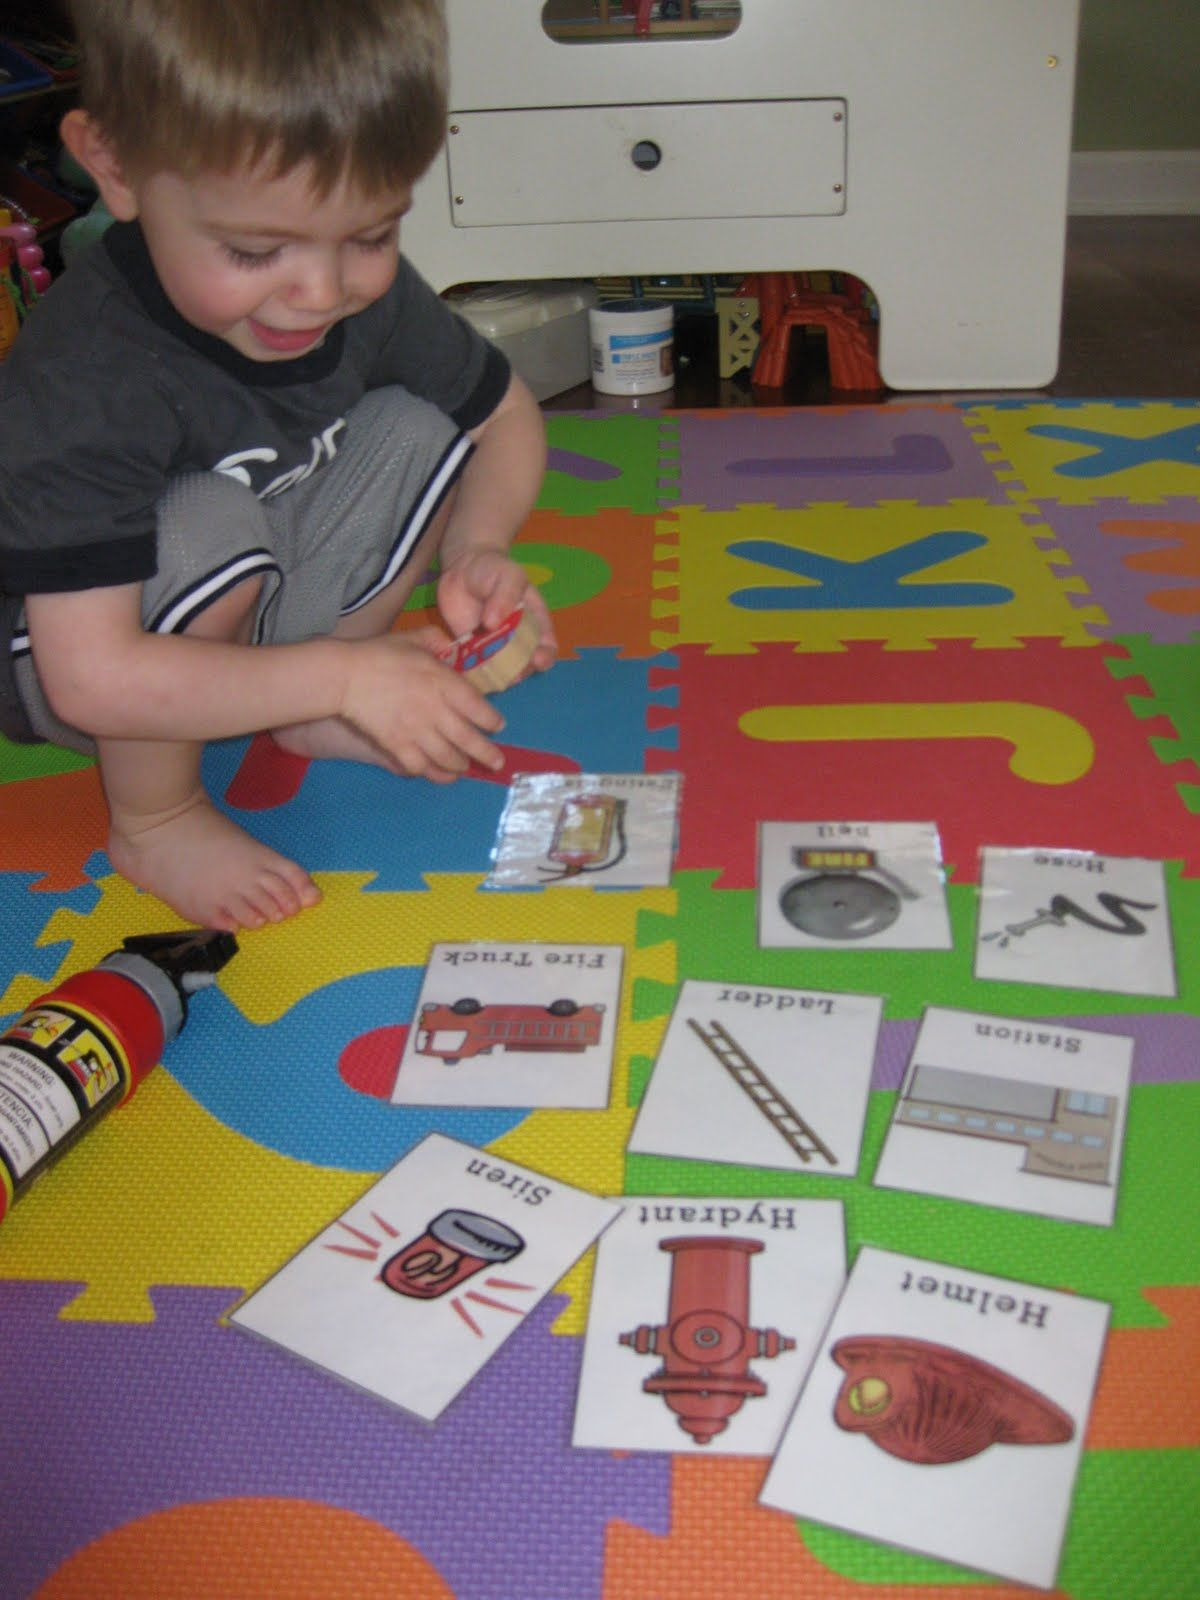 Firefighter Preschool Art Activities Helpful Early